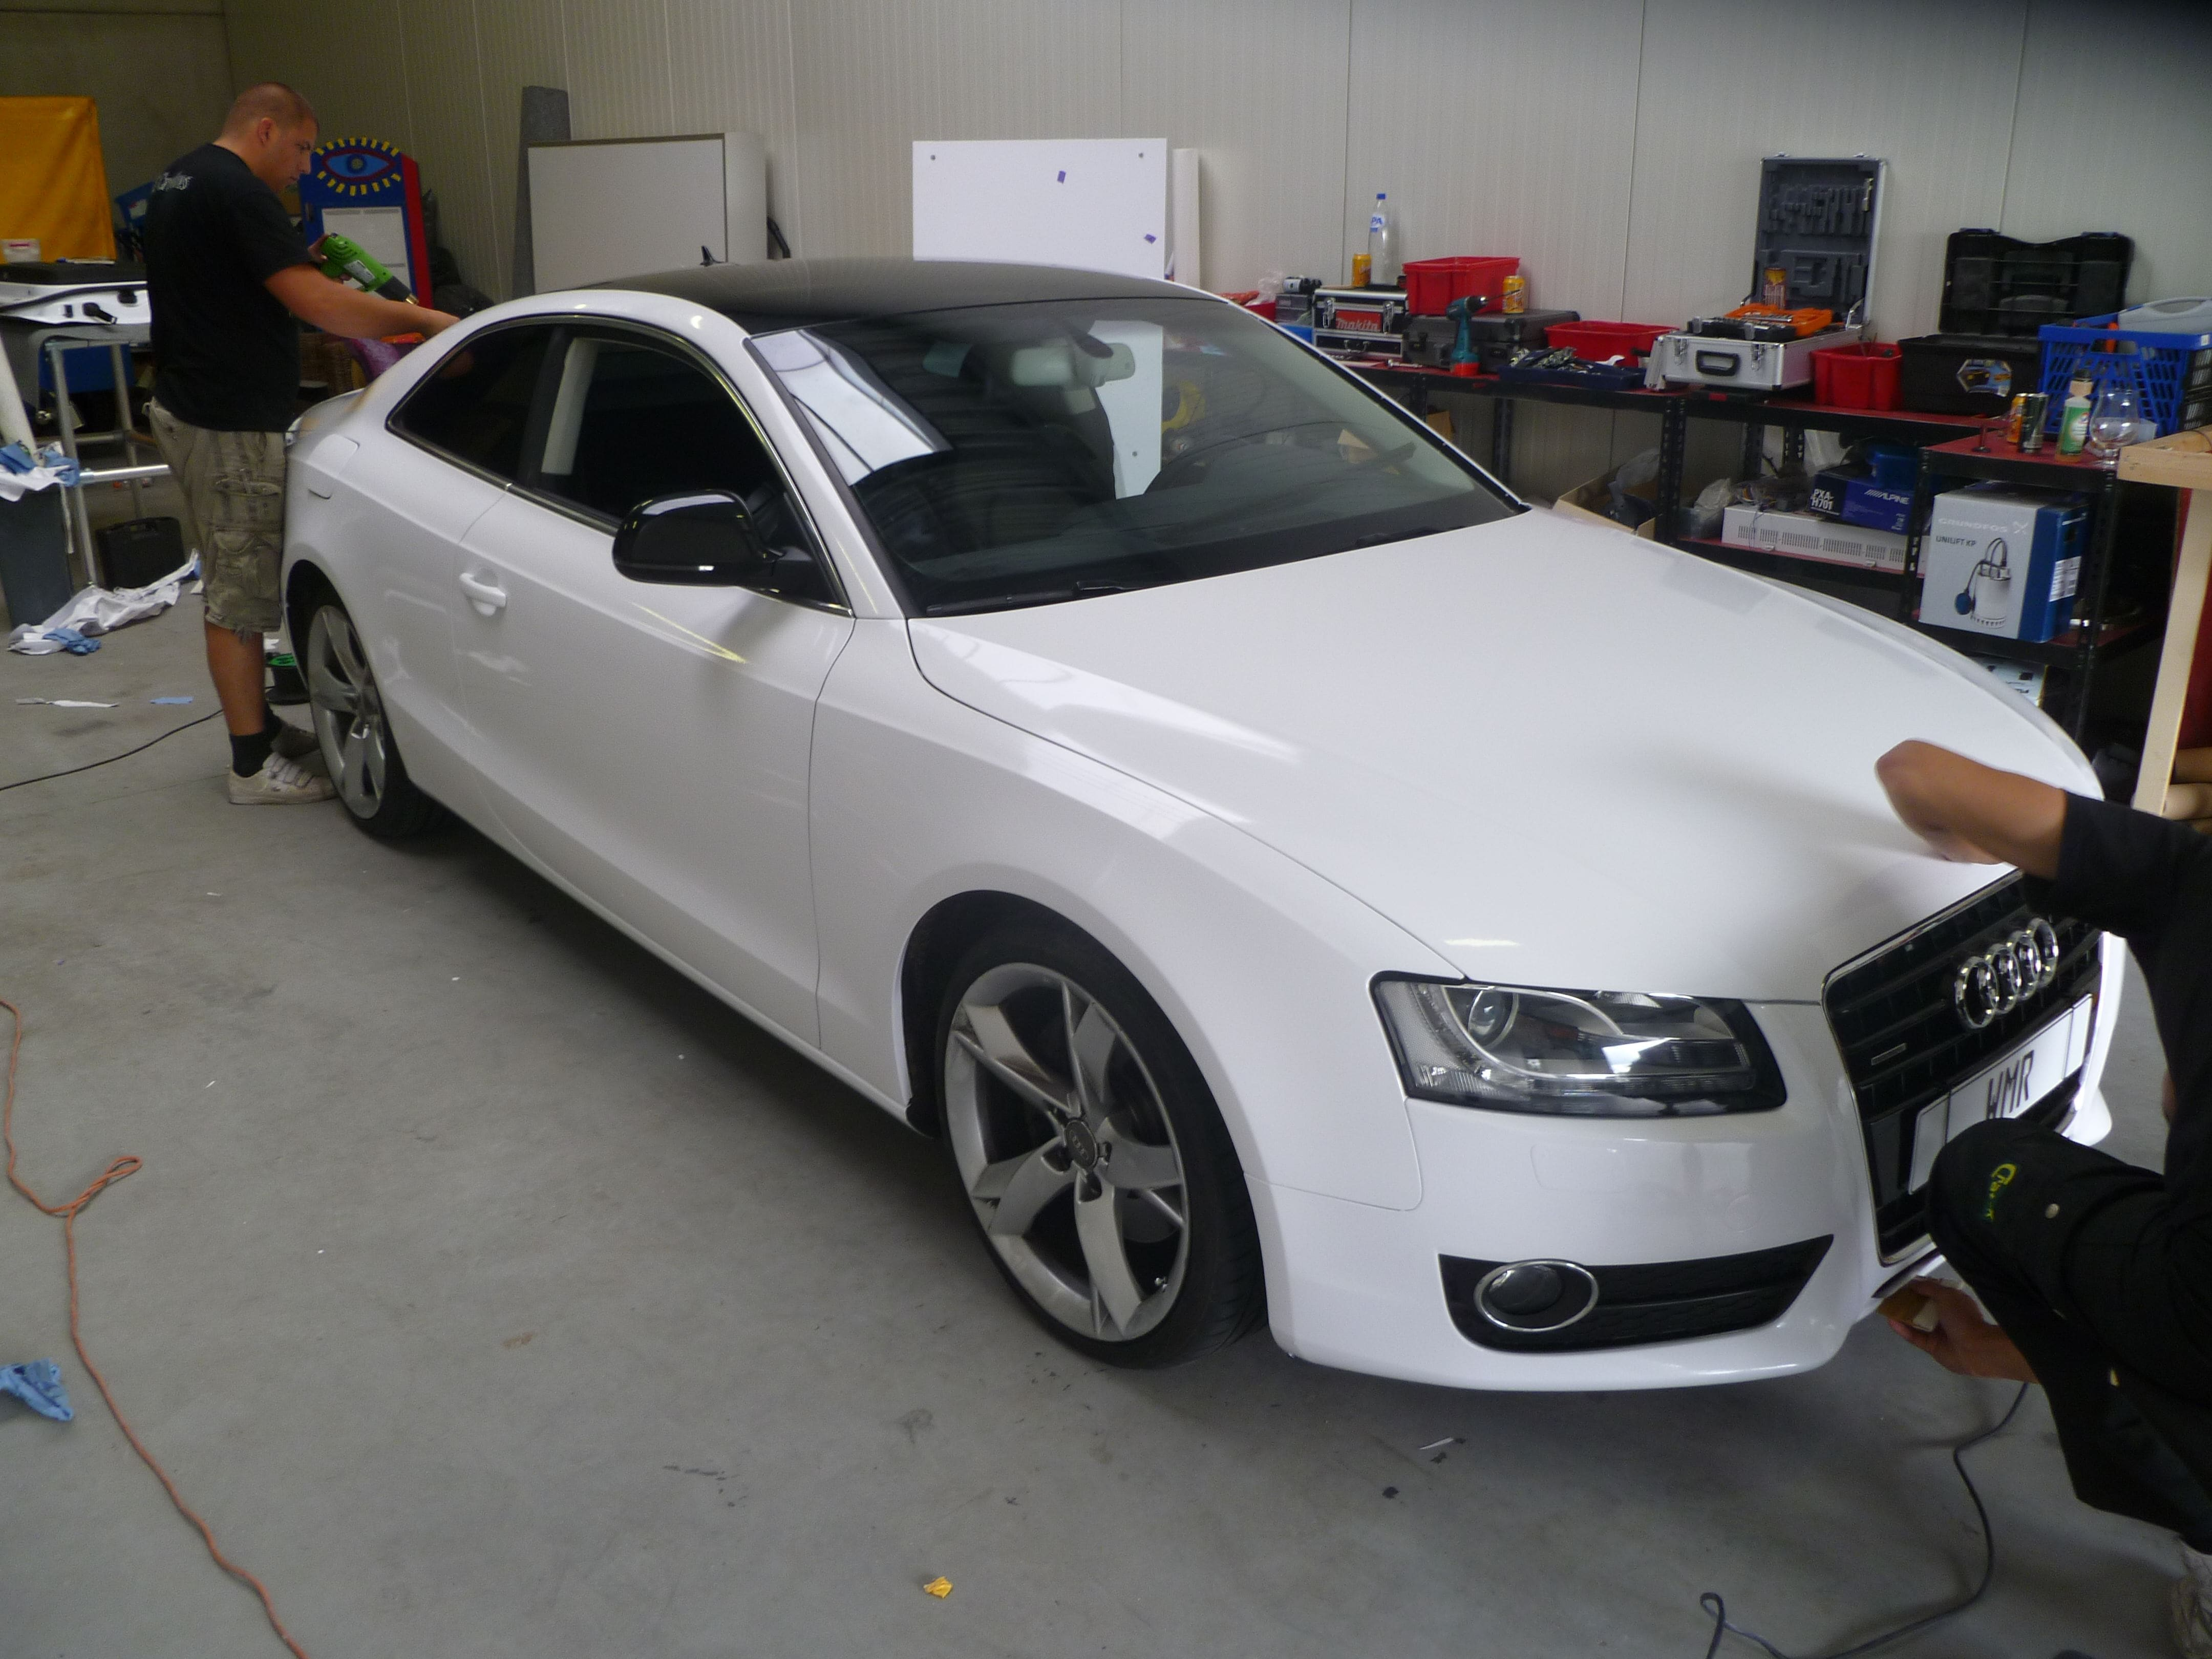 Audi A5 coupe met Metallic Witte Wrap, Carwrapping door Wrapmyride.nu Foto-nr:4733, ©2020